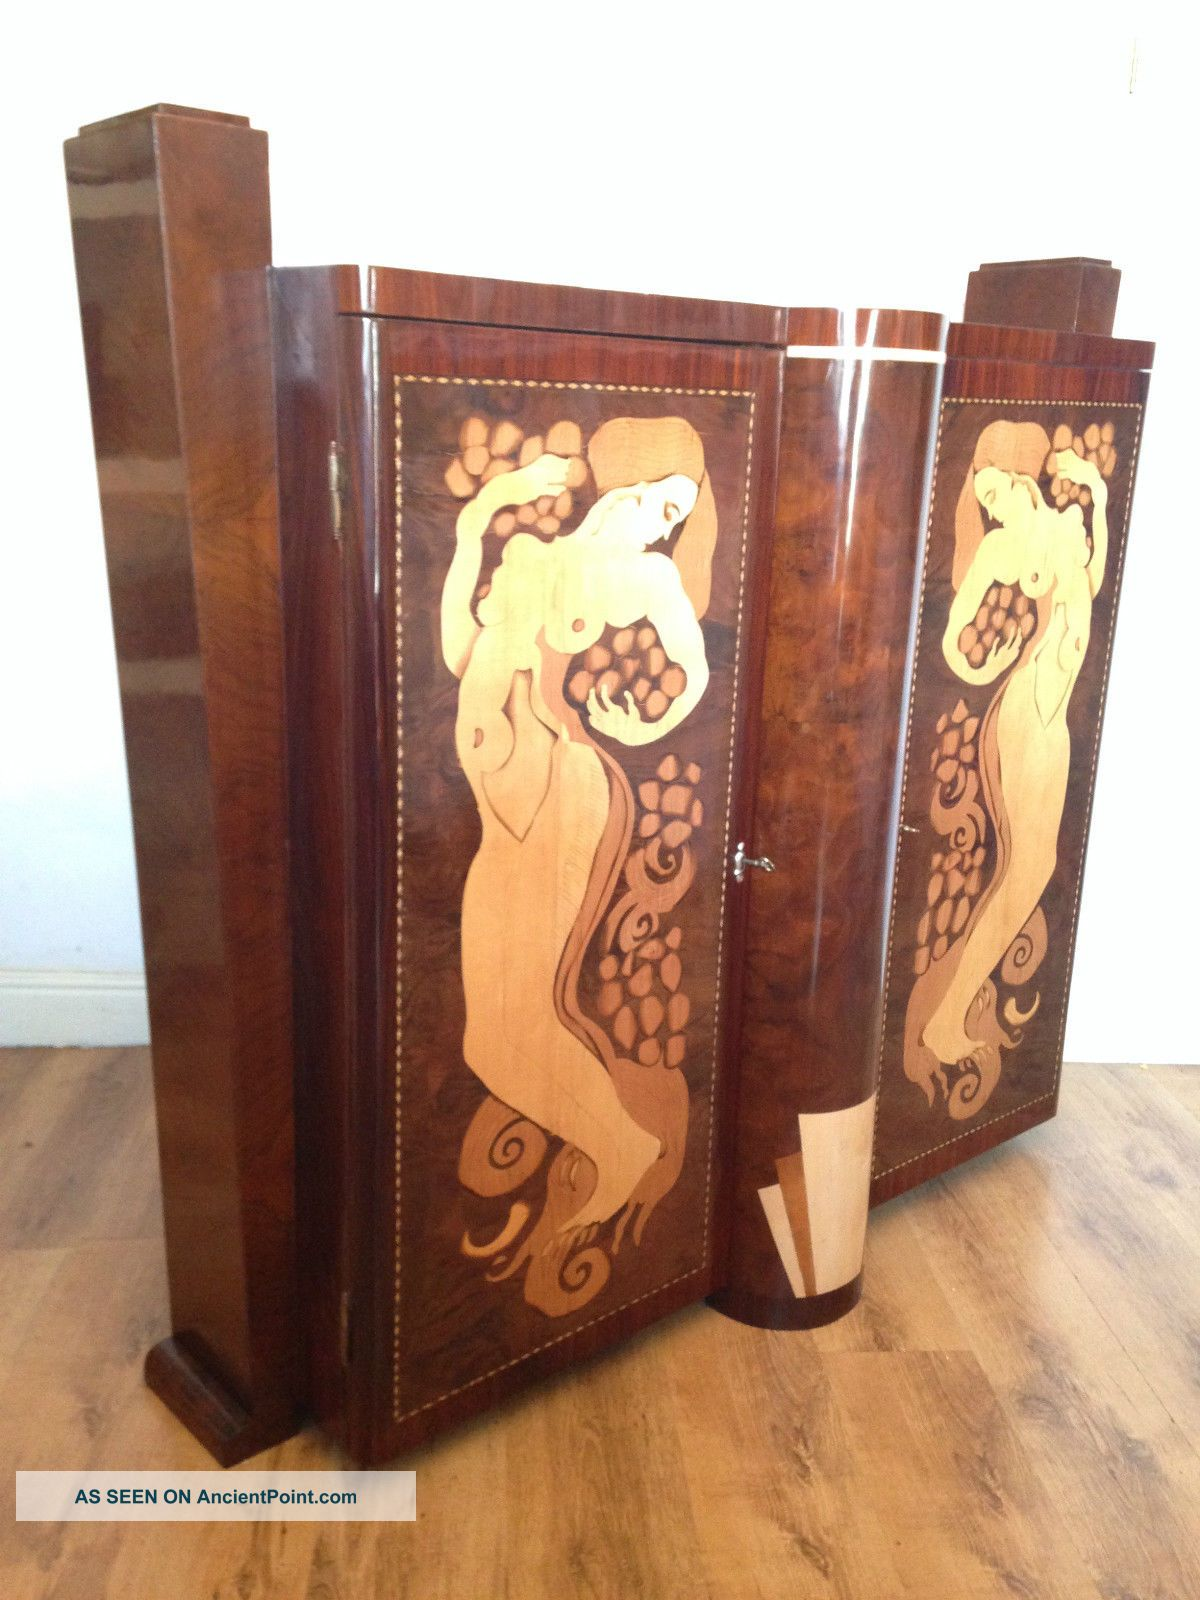 Unusual Italian Modernist Art Deco Inlaid Rosewood & Walnut Cabinet / Sideboard 1900-1950 photo